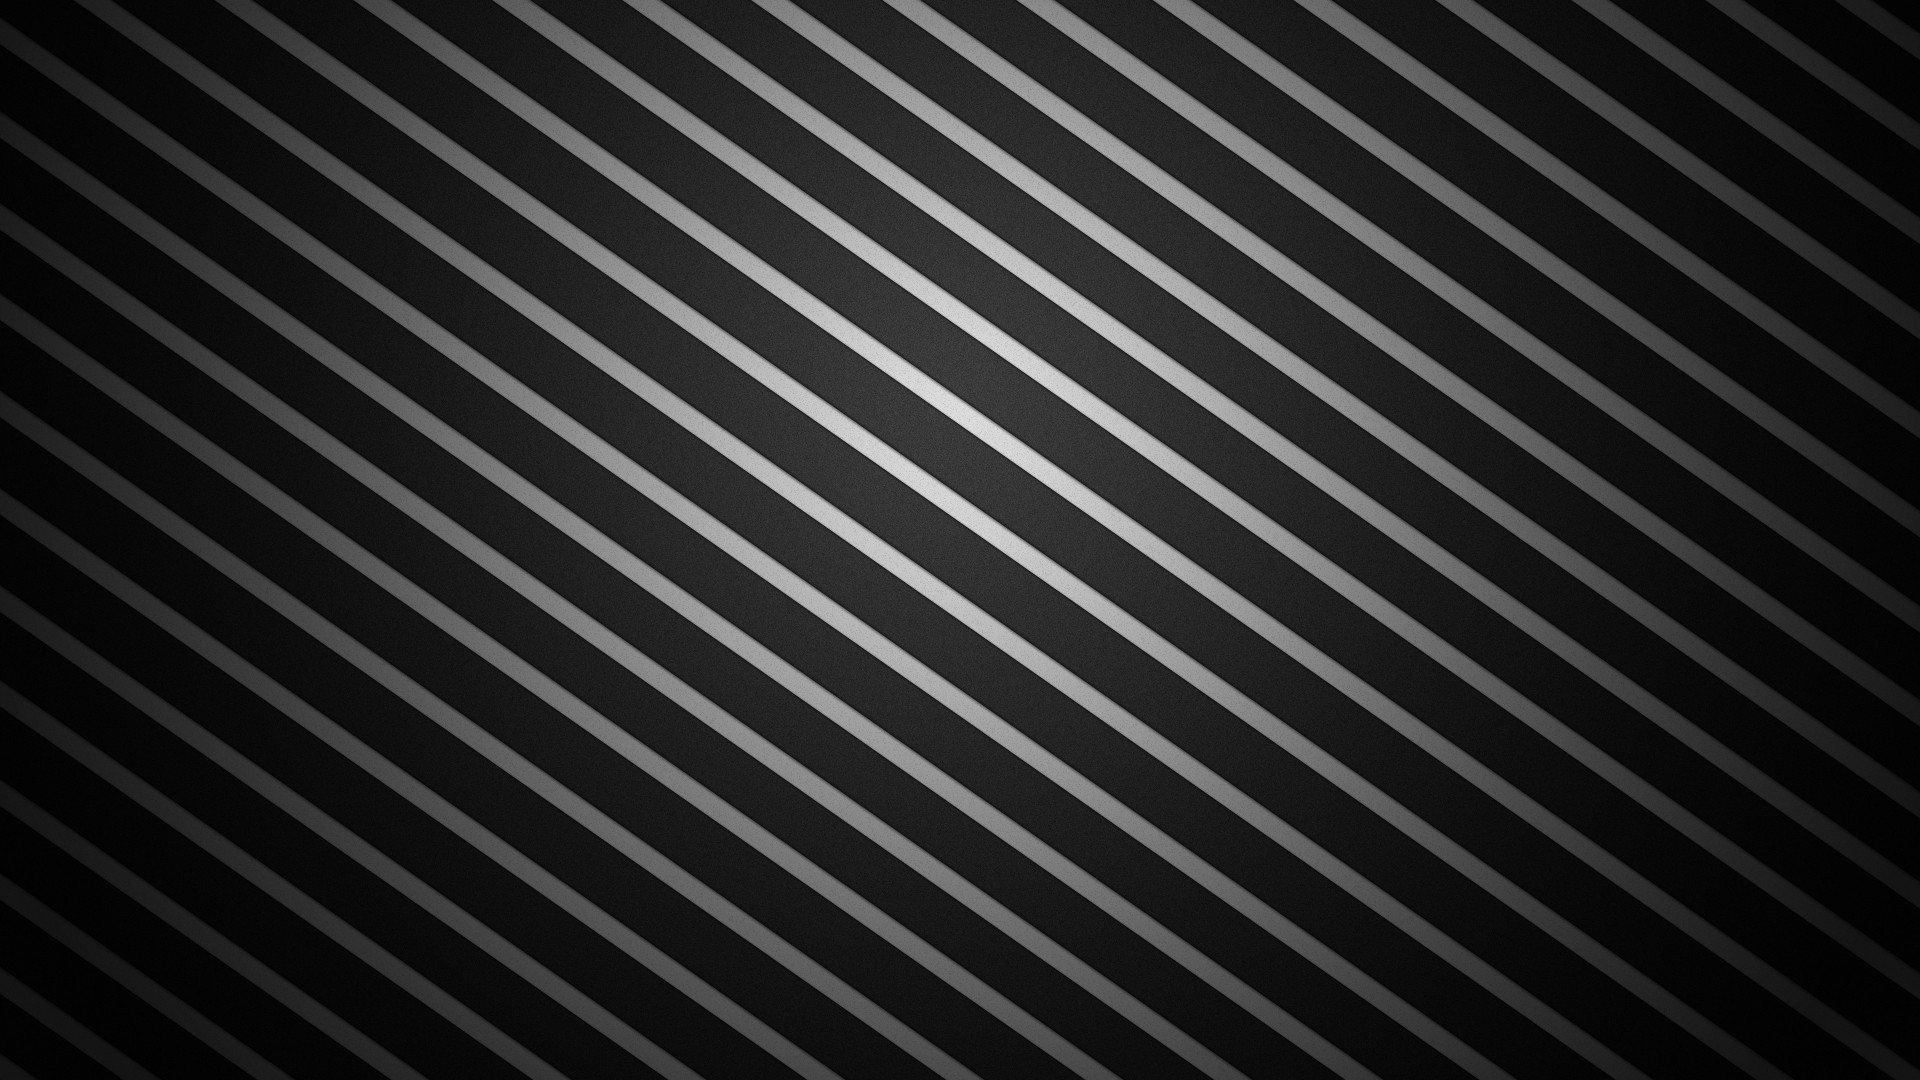 Download Abstract Black White Line Wallpaper Full HD Wallpapers 1920x1080